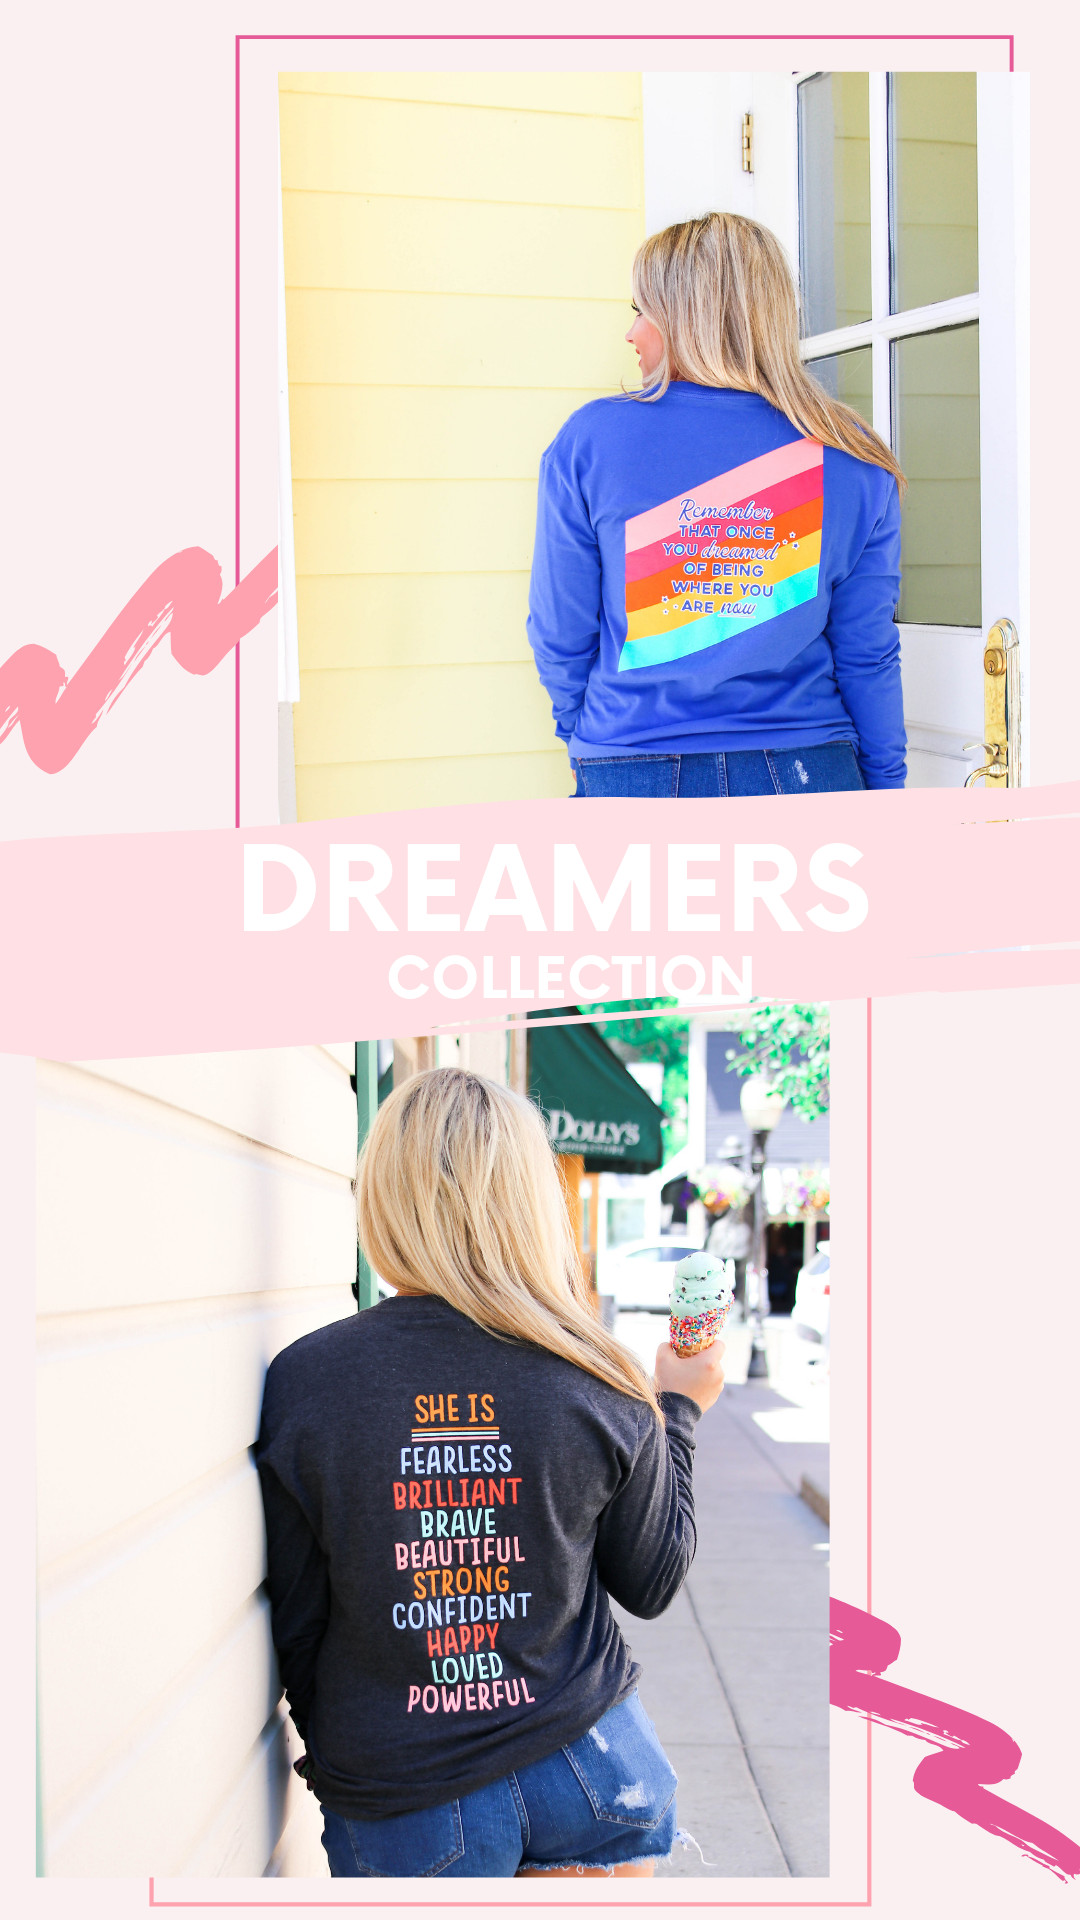 DREAMERS COLLECTION